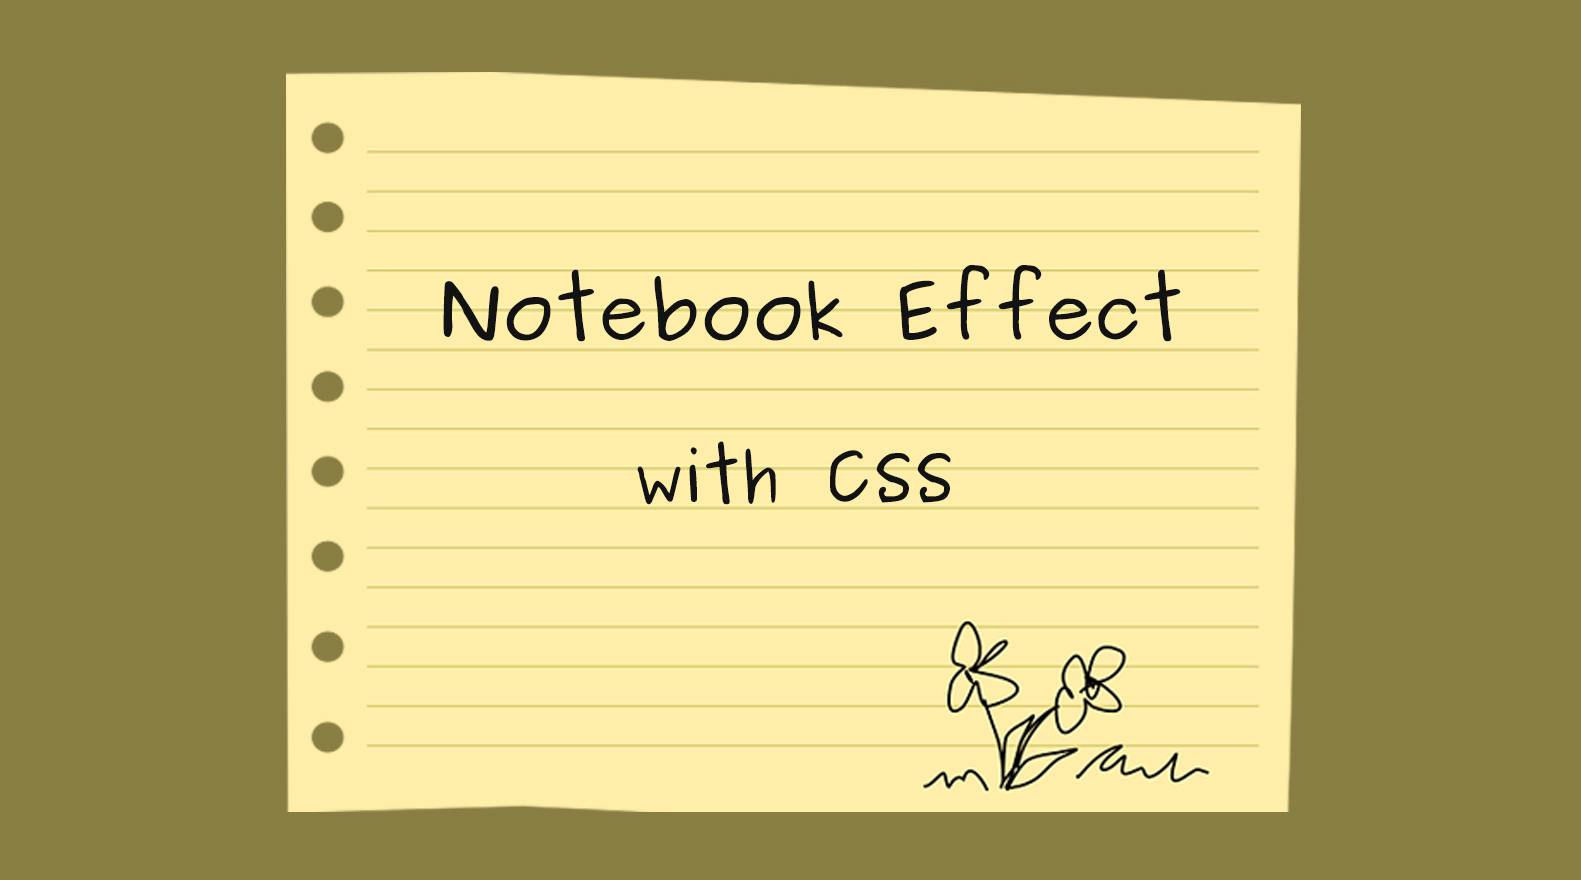 Getting Notebook Paper Effect with CSS